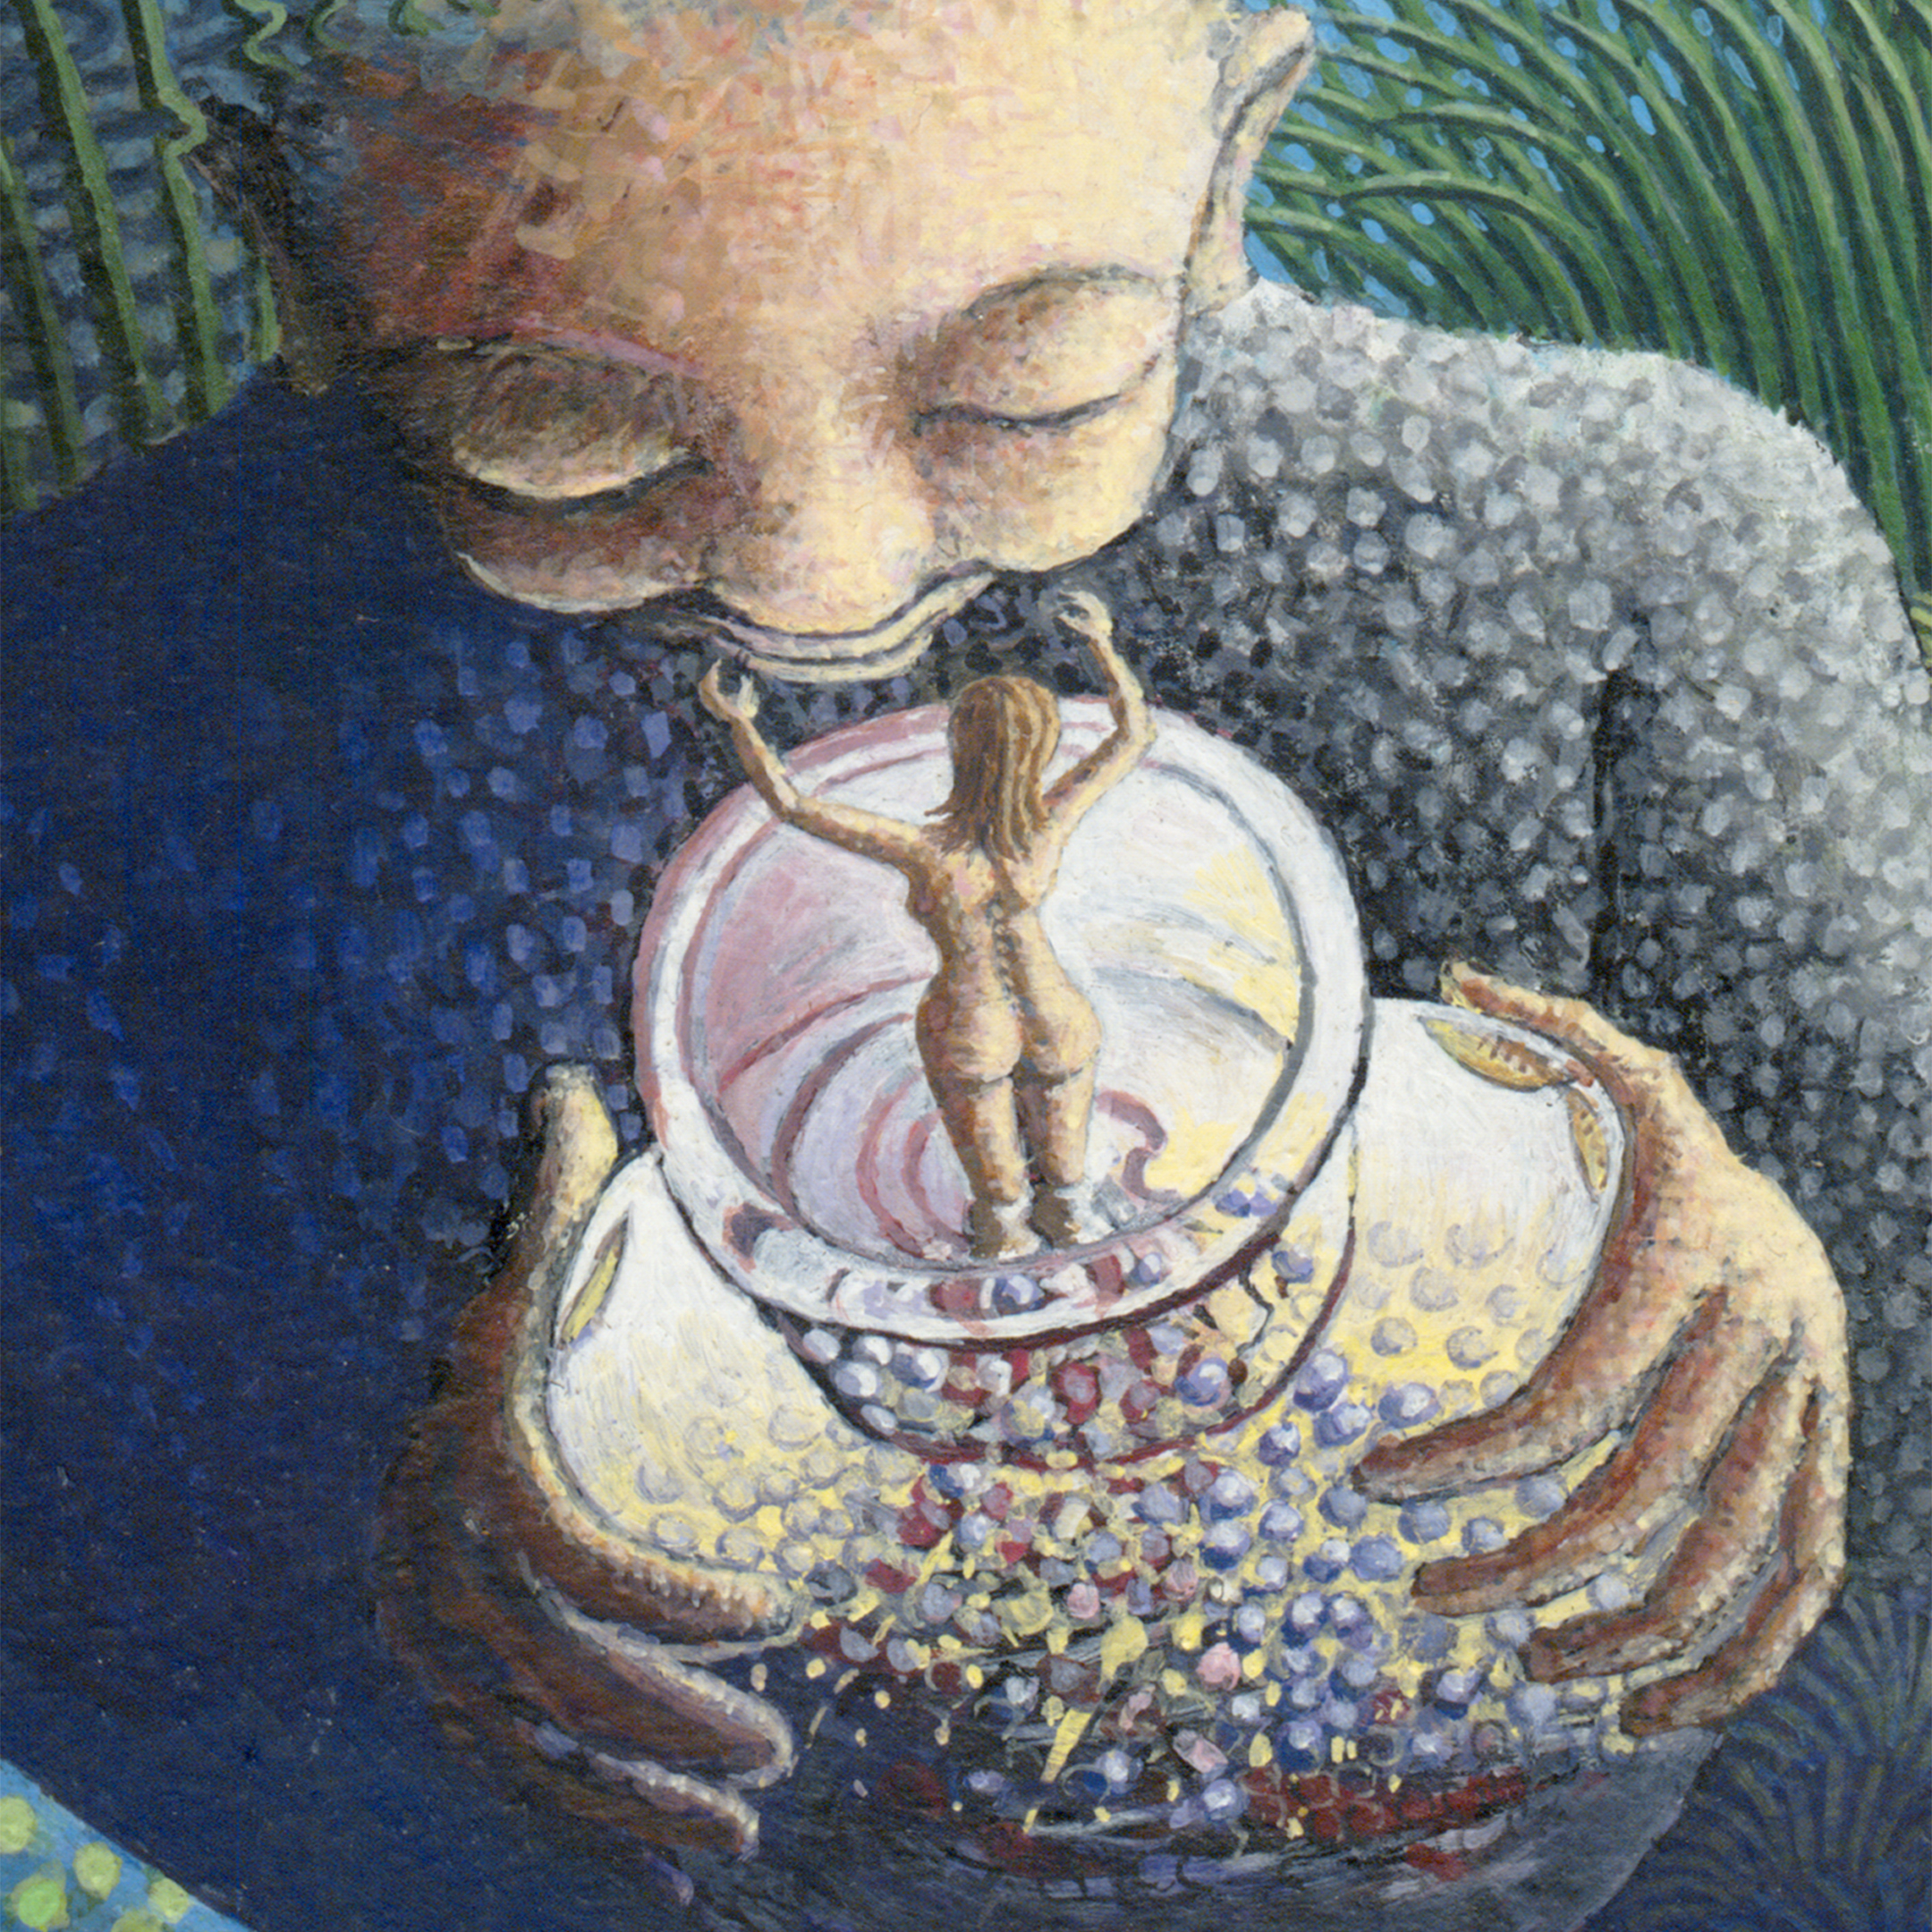 naked_girl_in_glass_bowl_from_Garden of Mirthly Delights_02